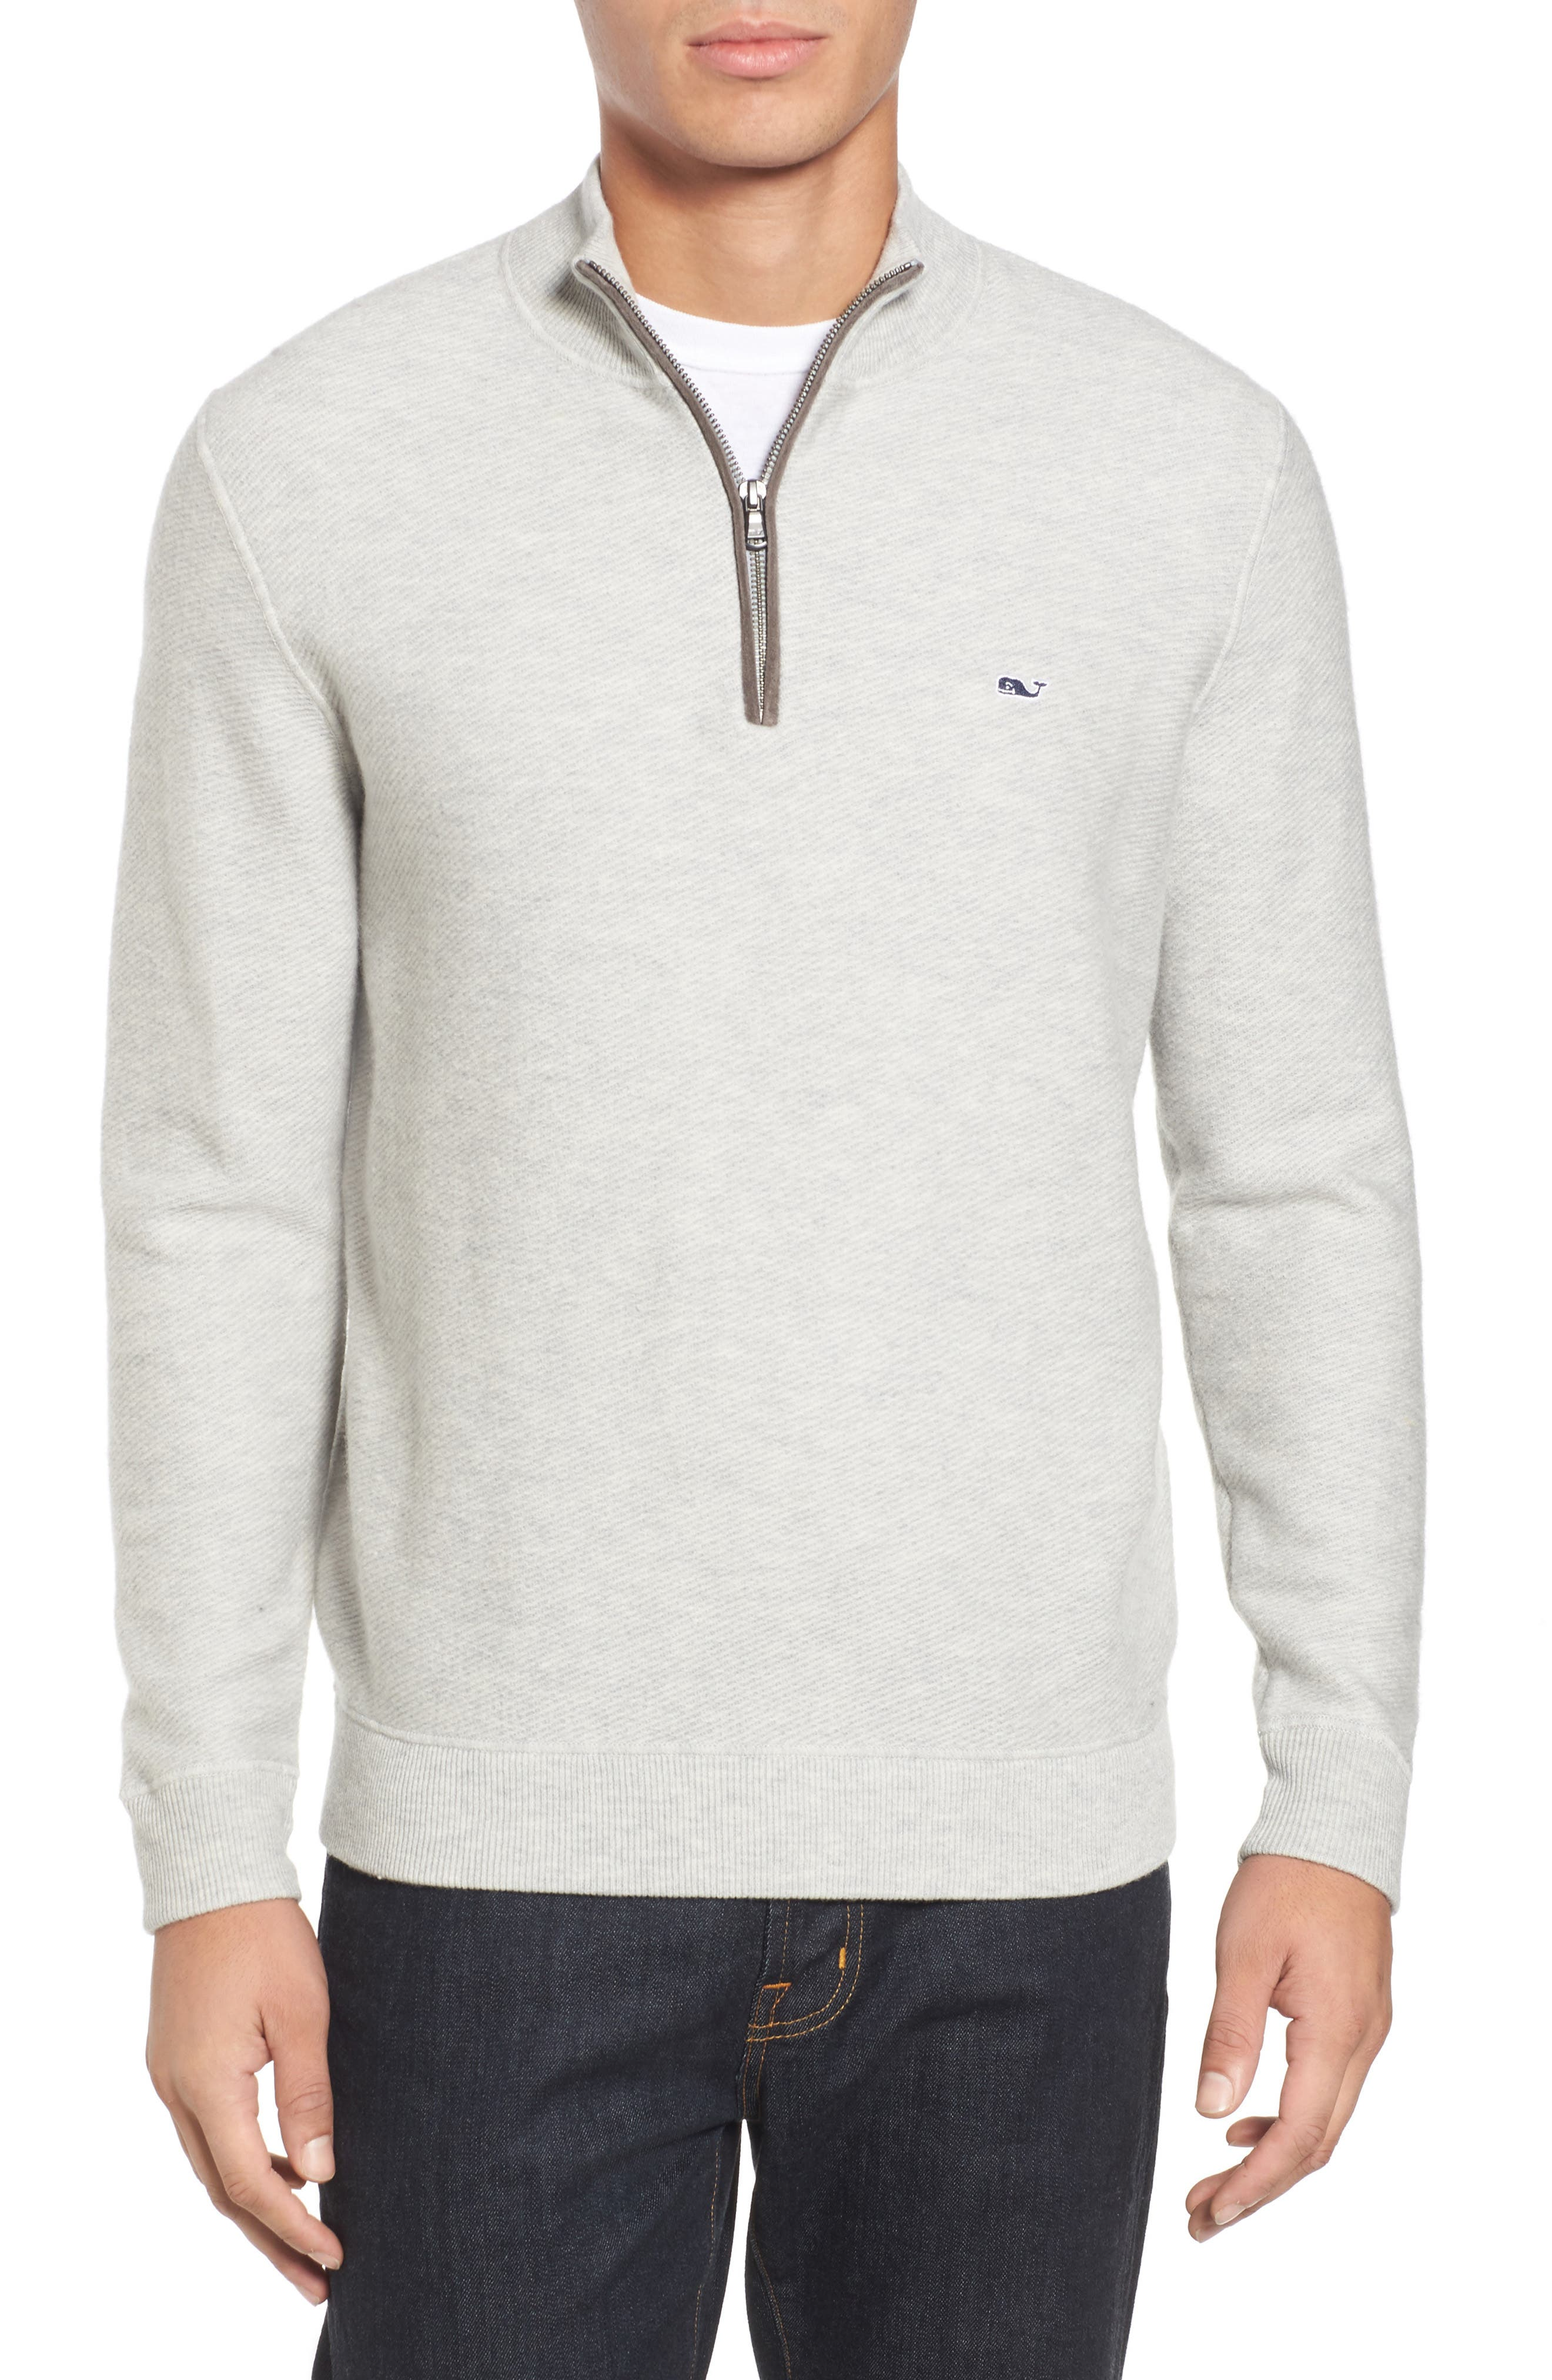 Main Image - vineyard vines Merino Wool Twill Stitch Quarter Zip Sweater